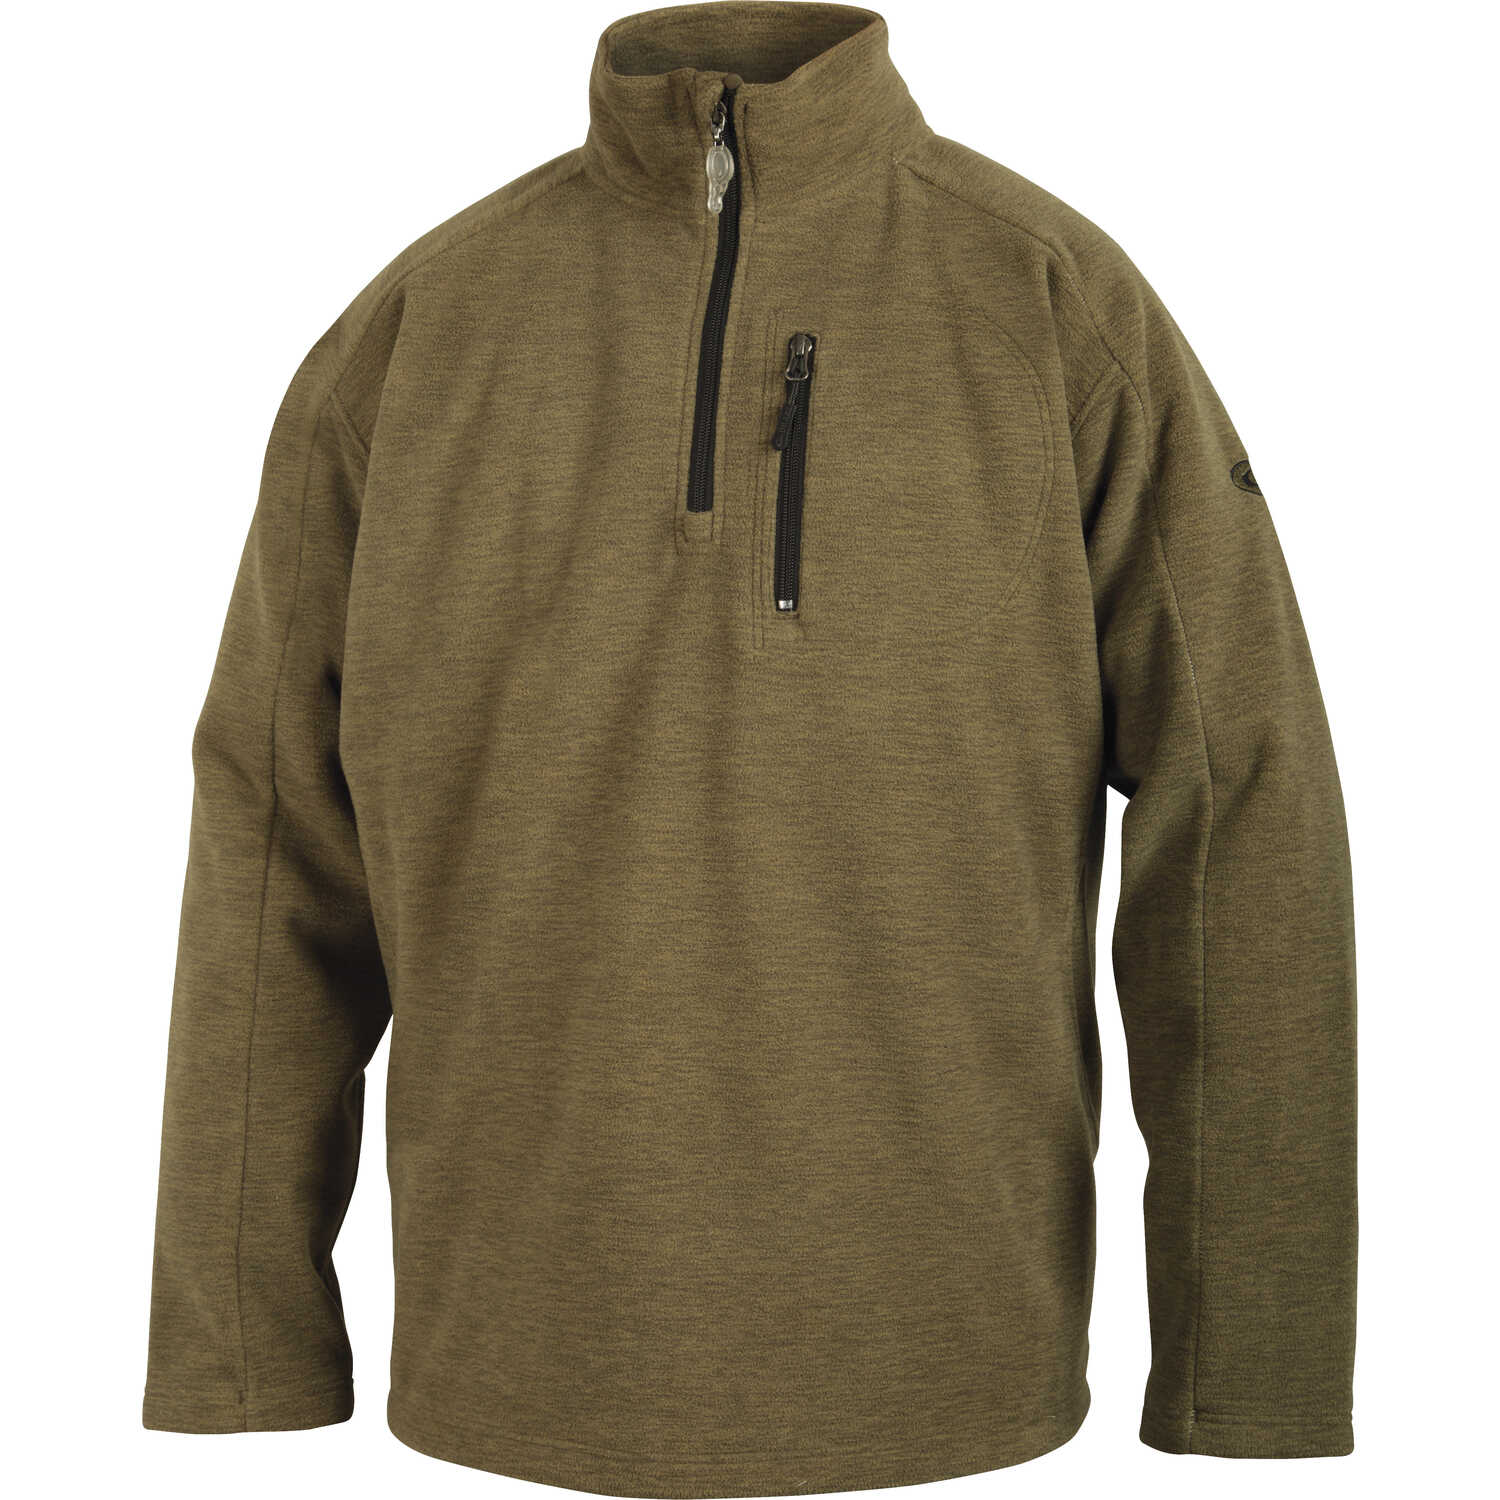 Drake  MST  S  Long Sleeve  Men's  Quarter Zip  Heathered Sage  Pullover